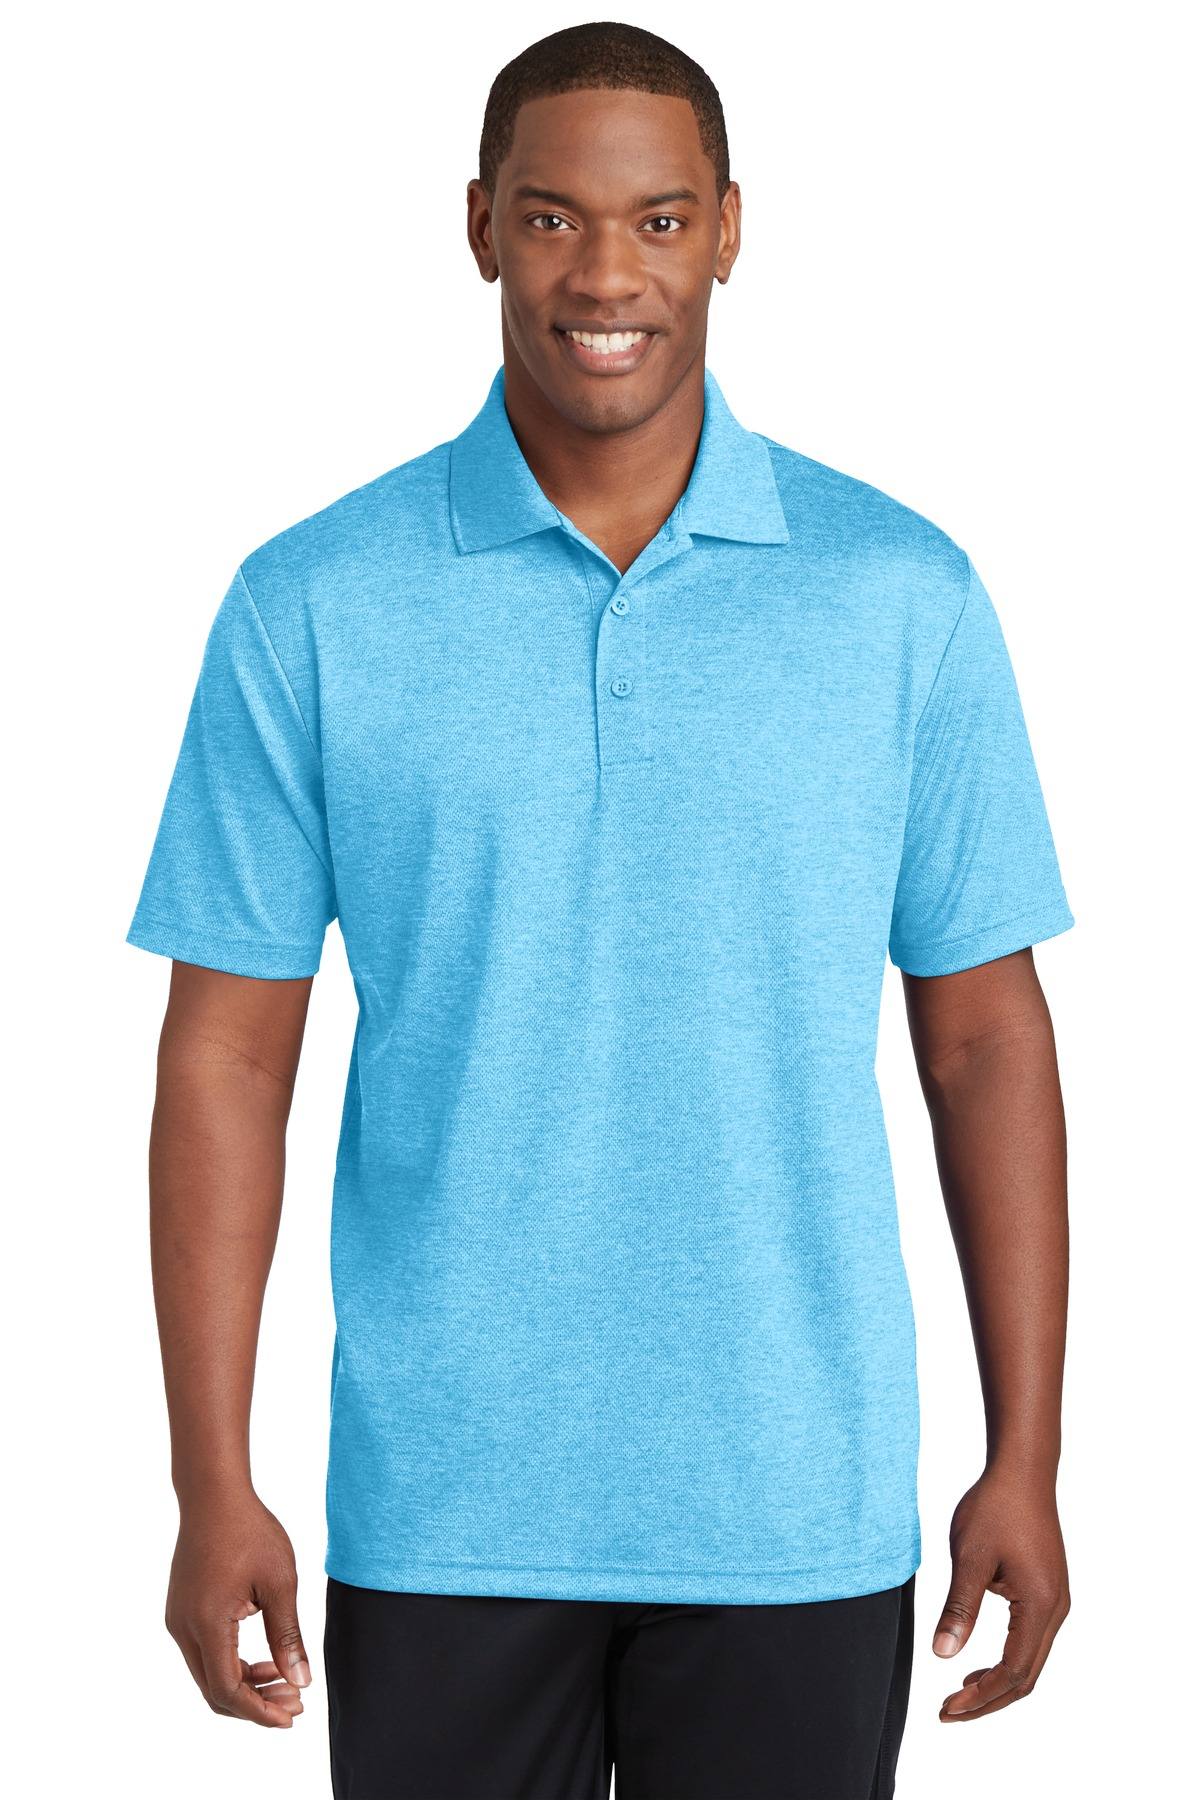 Sport-Tek ®  PosiCharge ®  RacerMesh ®  Polo. ST640 - Pond Blue Heather